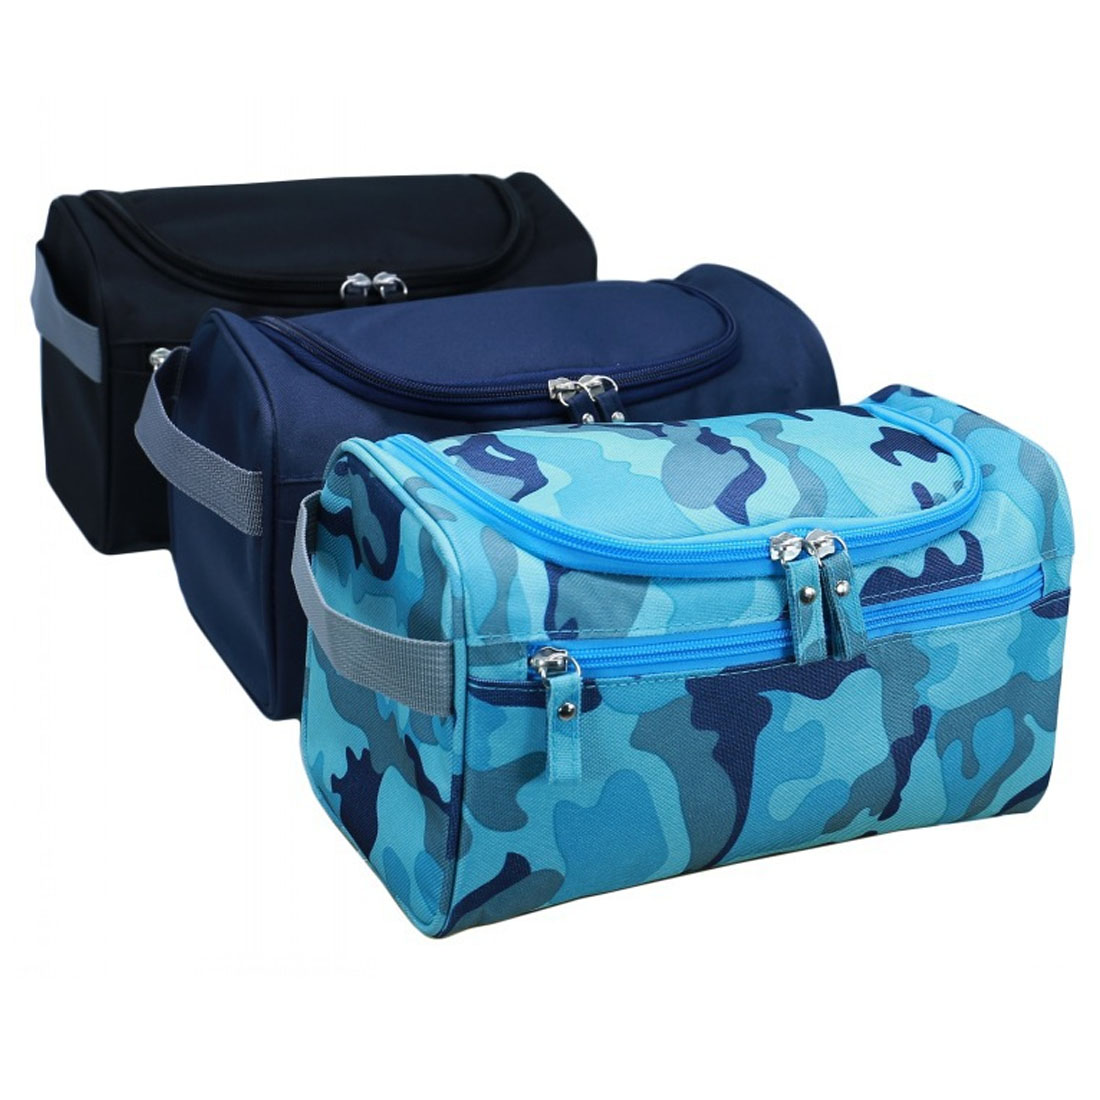 Travel Toiletry Bag Colors Hanging Travel Toiletry Bag Cosmetic Make Up Organizer Portable Outdoor Case Bag